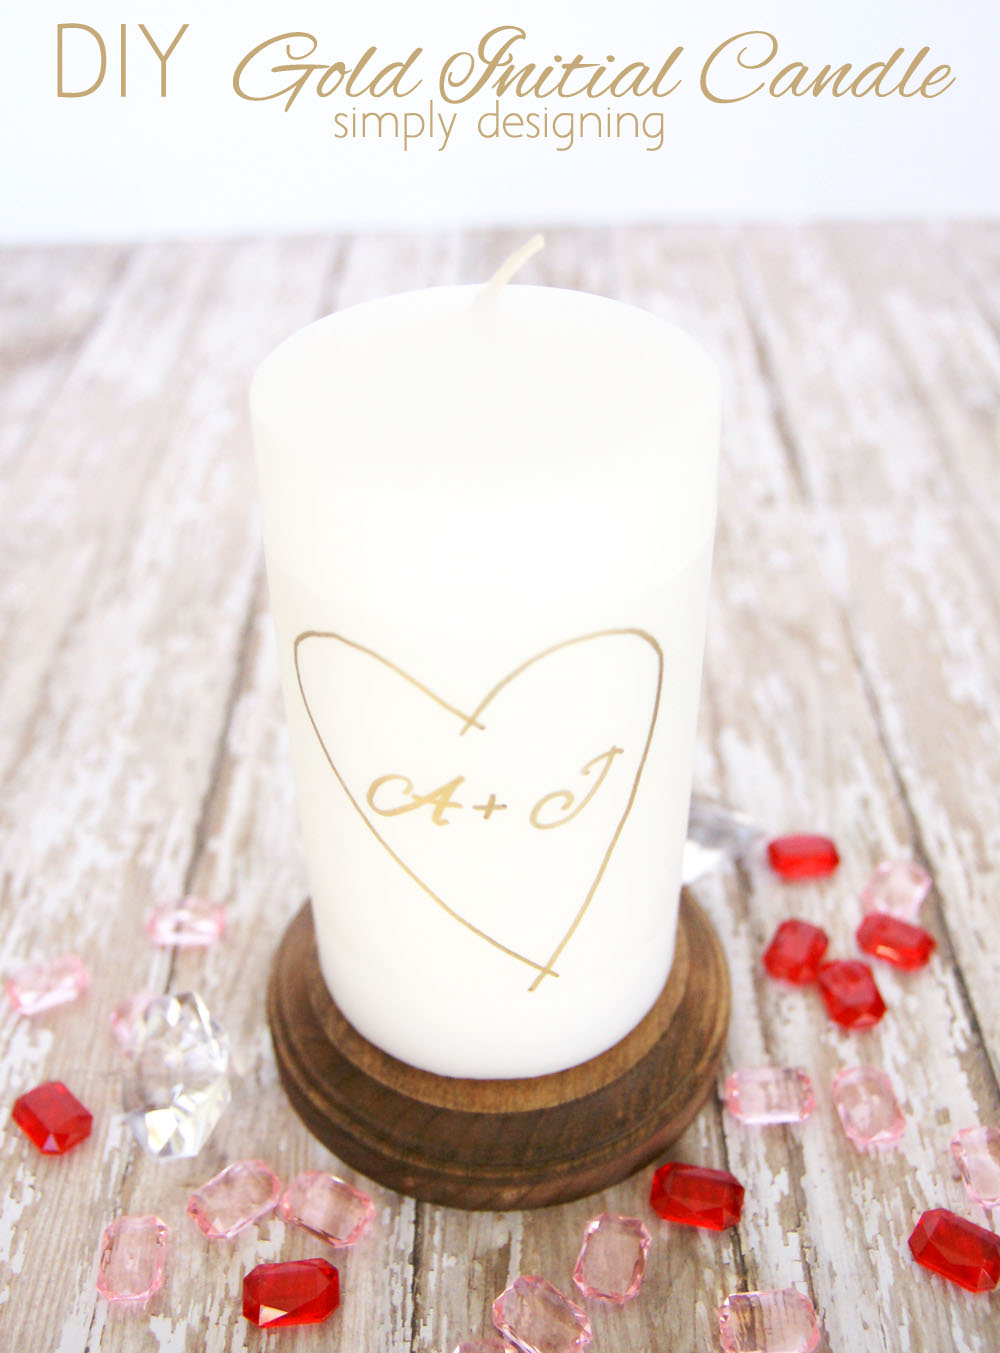 DIY Gold Initial Candle | a quick and simple craft perfect to gift for Valentine's Day, a wedding, an anniversary or just because! | #gold #candle #diygift